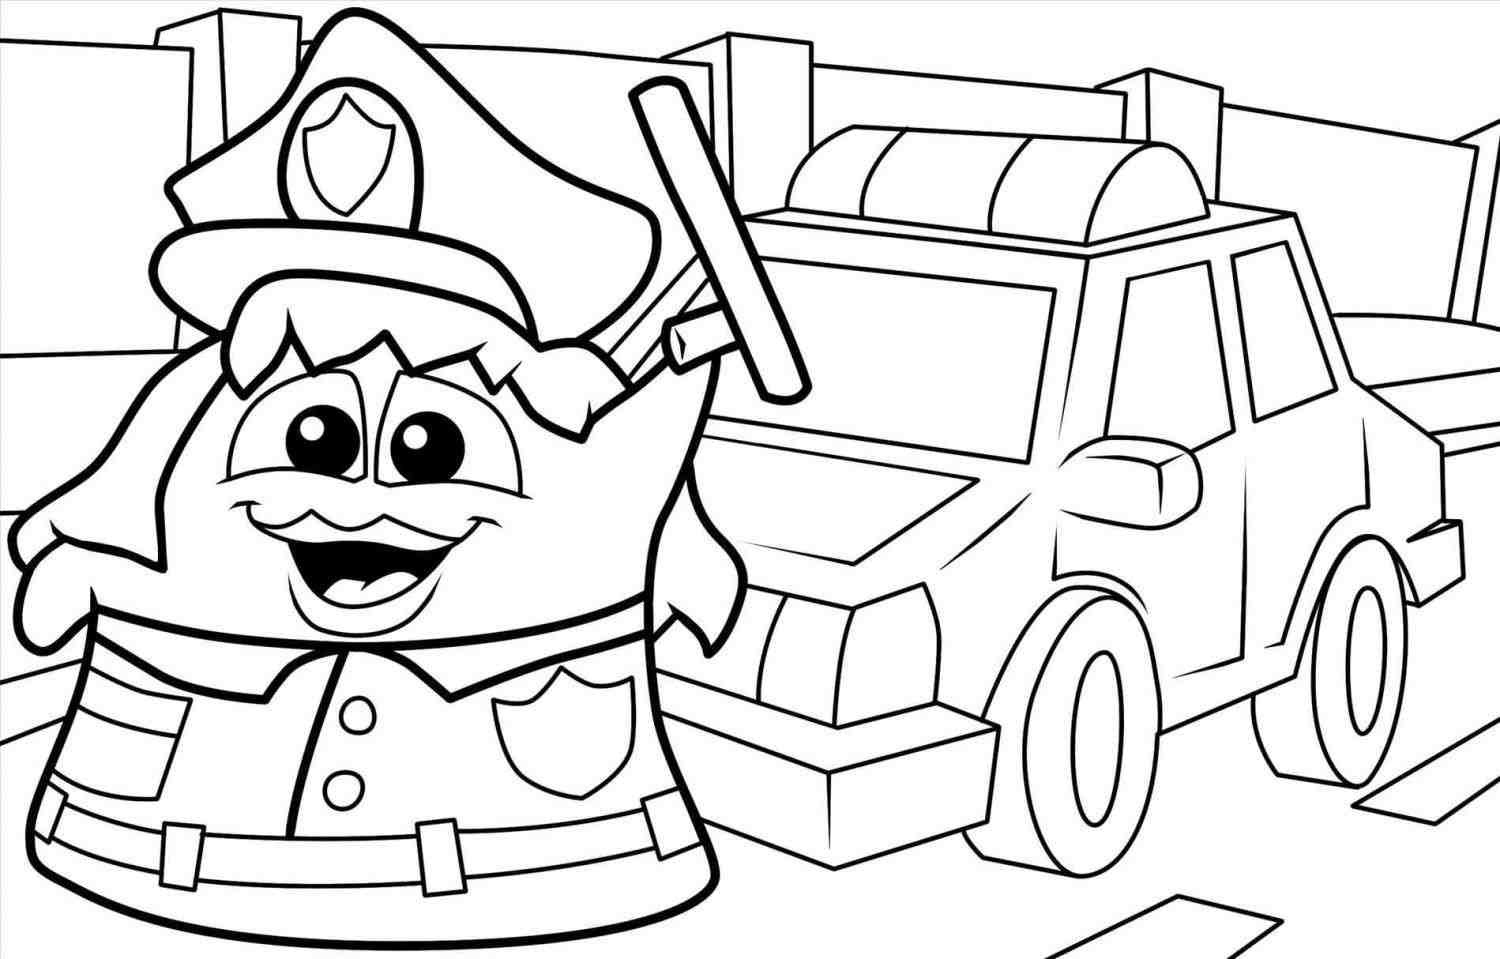 playground coloring pages redirecting to httpwwwsheknowscomparentingslideshow playground pages coloring 1 1